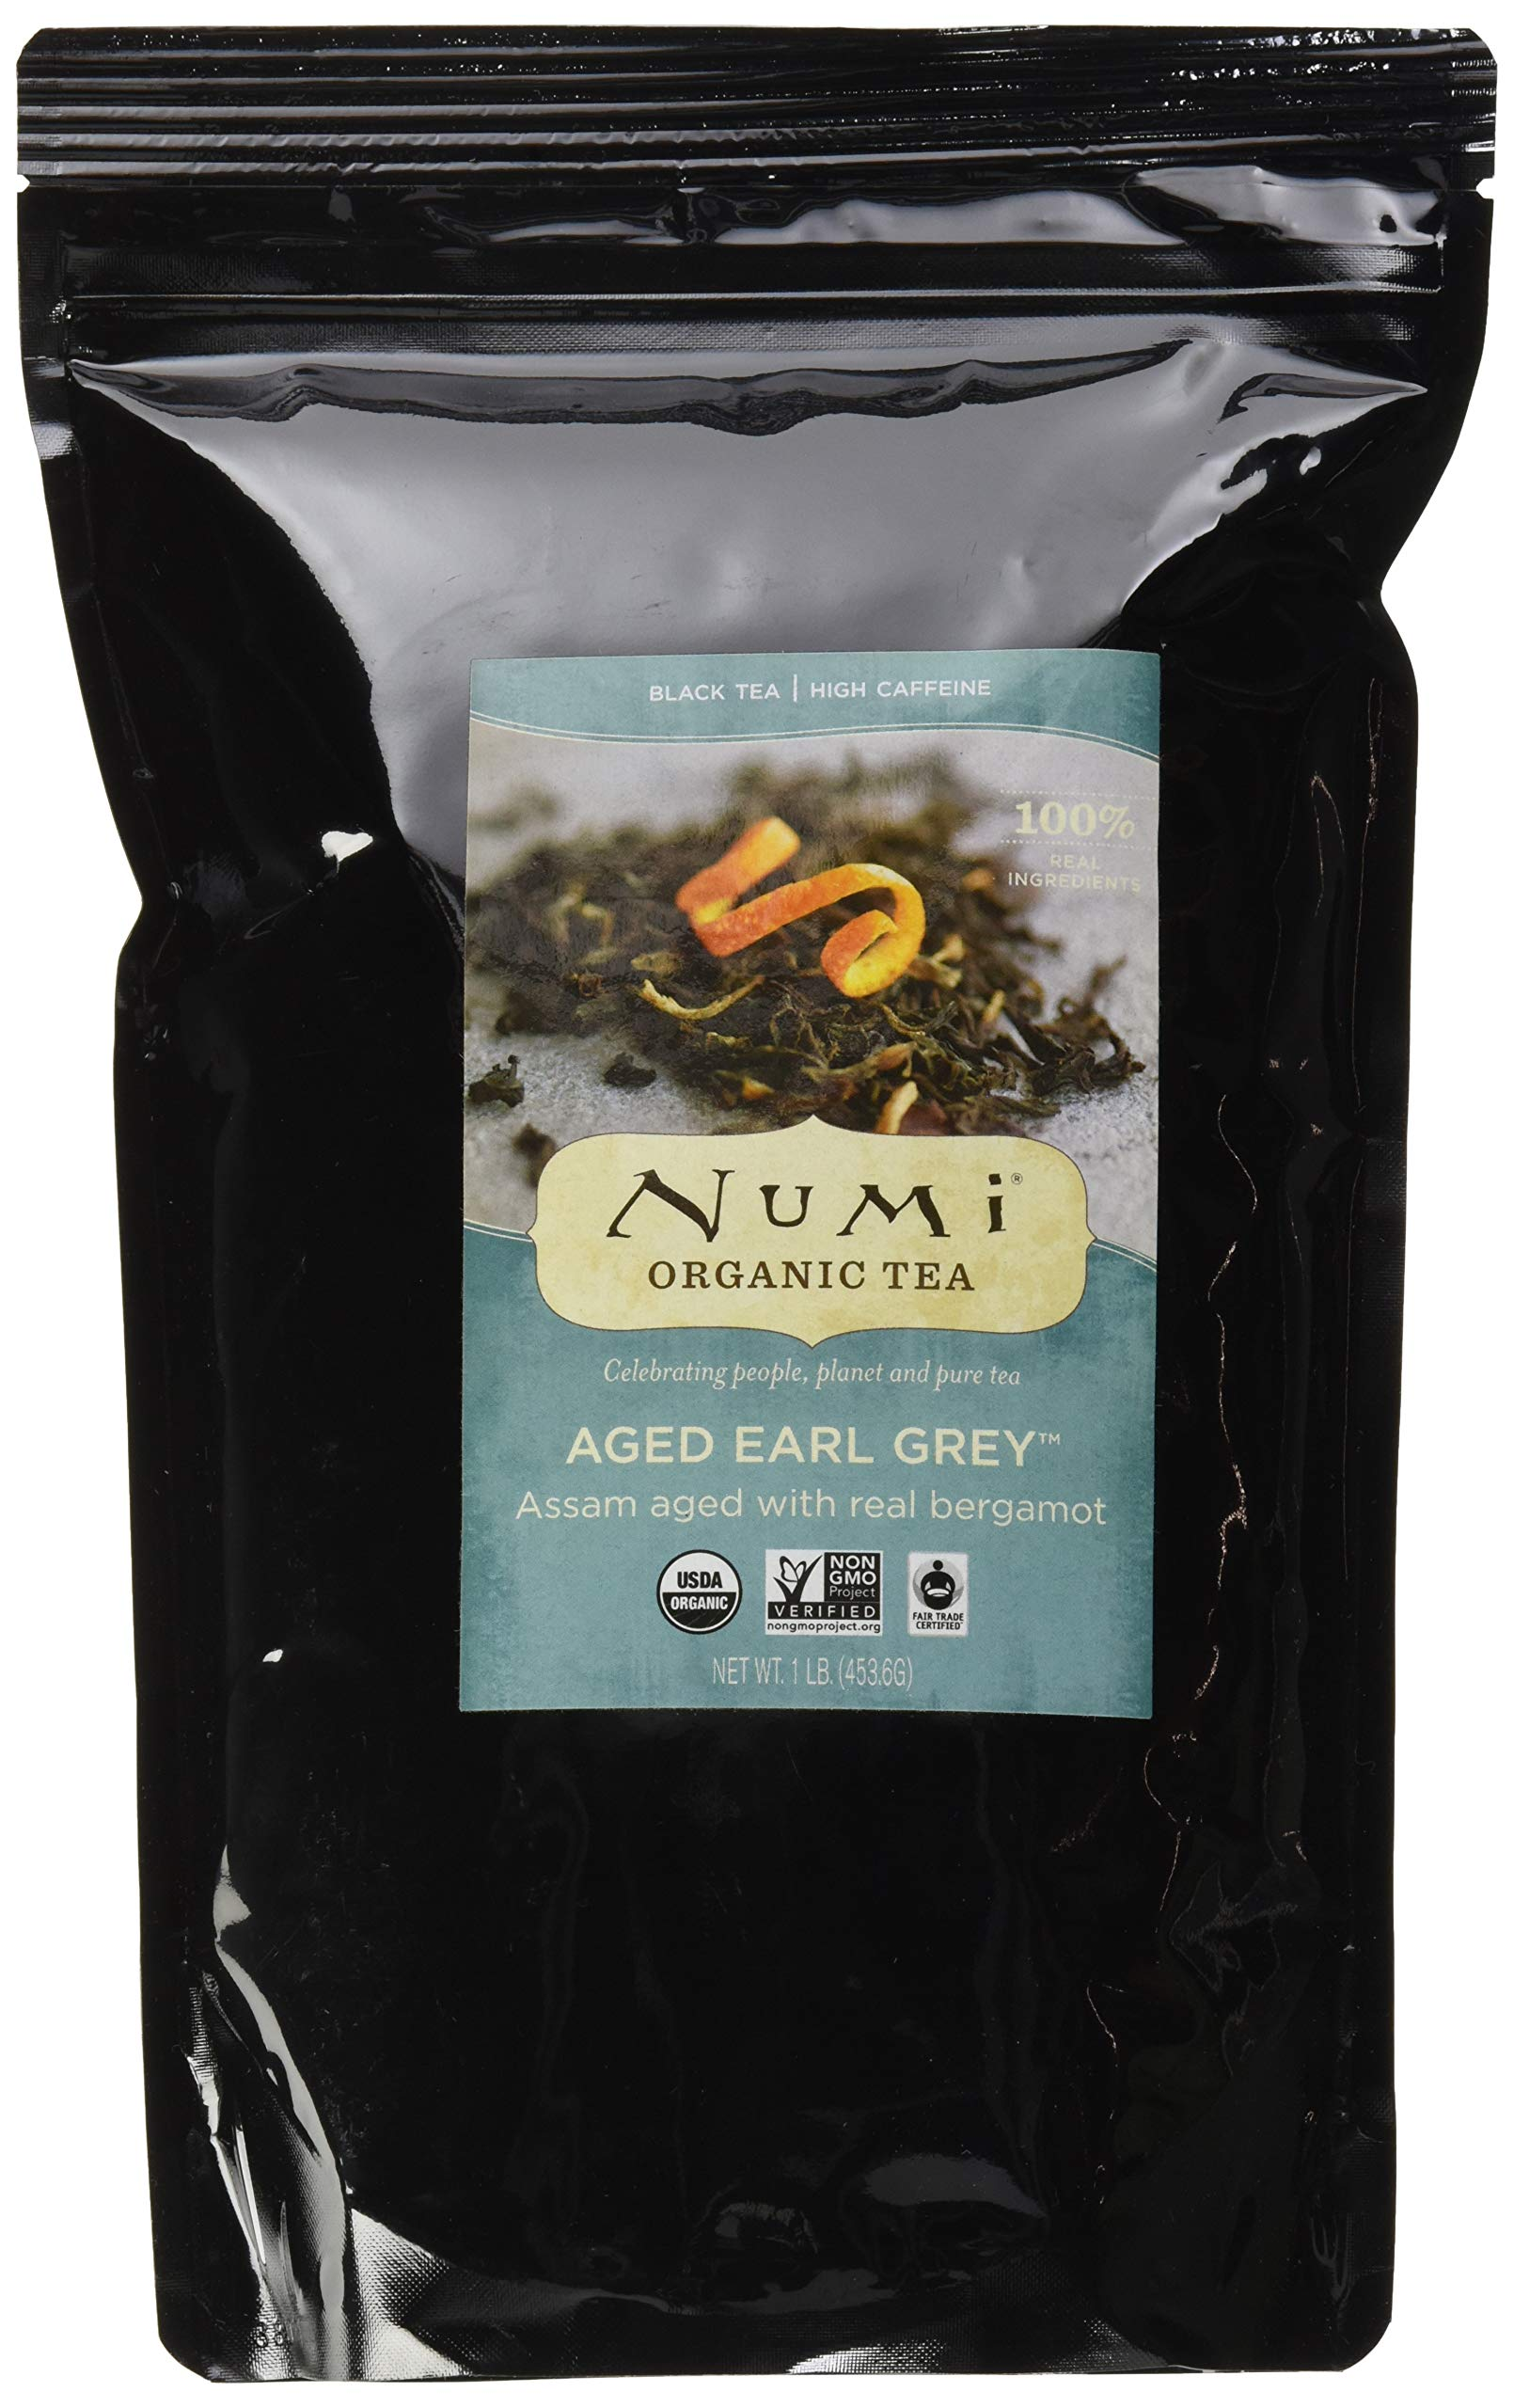 Numi Organic Tea Aged Earl Grey, 16 Ounce Pouch, Loose Leaf Black Tea (Packaging May Vary) by Numi